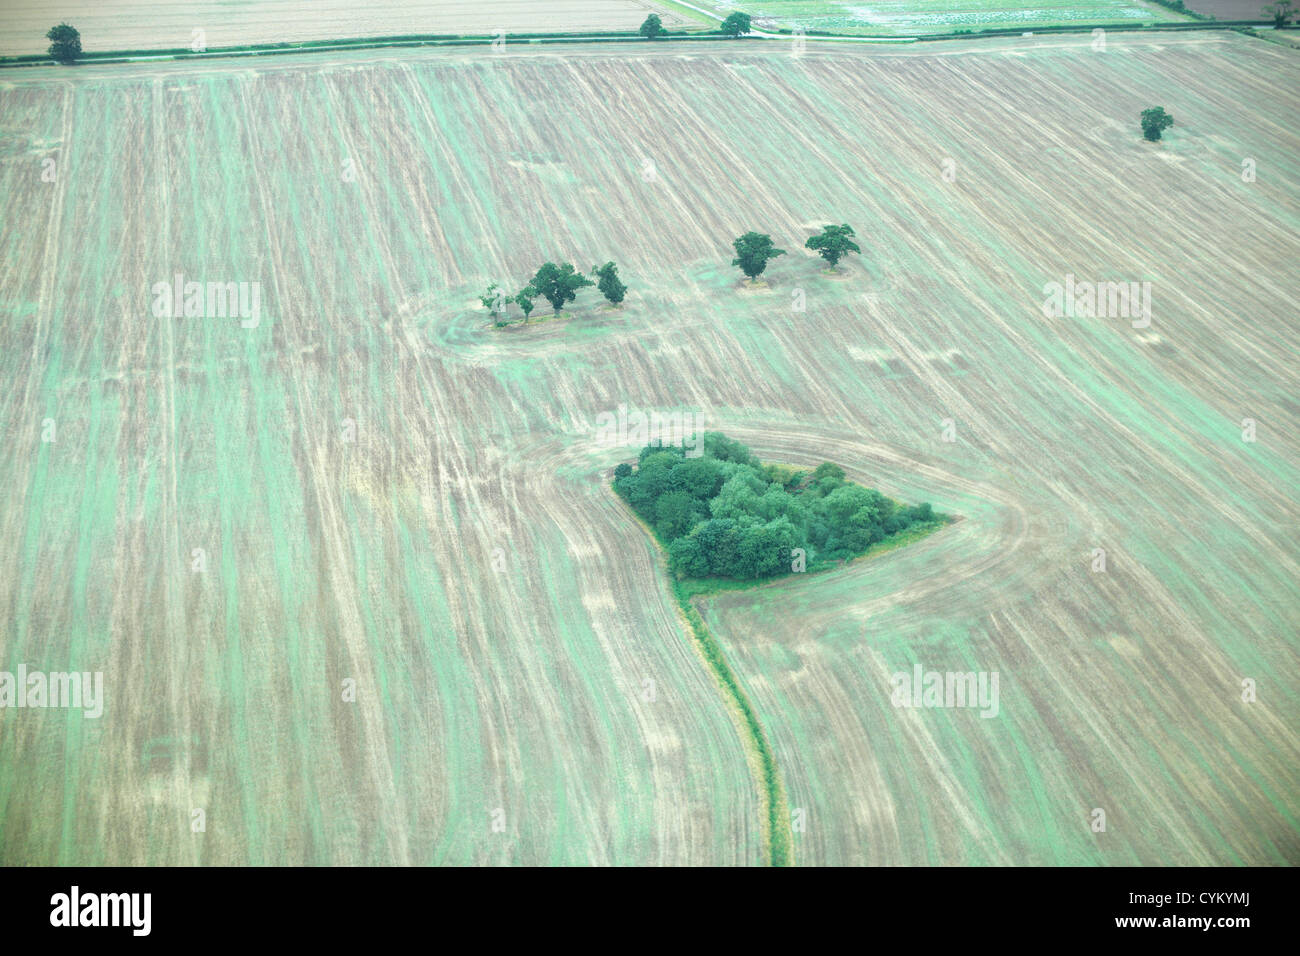 Aerial view of tilled field with trees - Stock Image